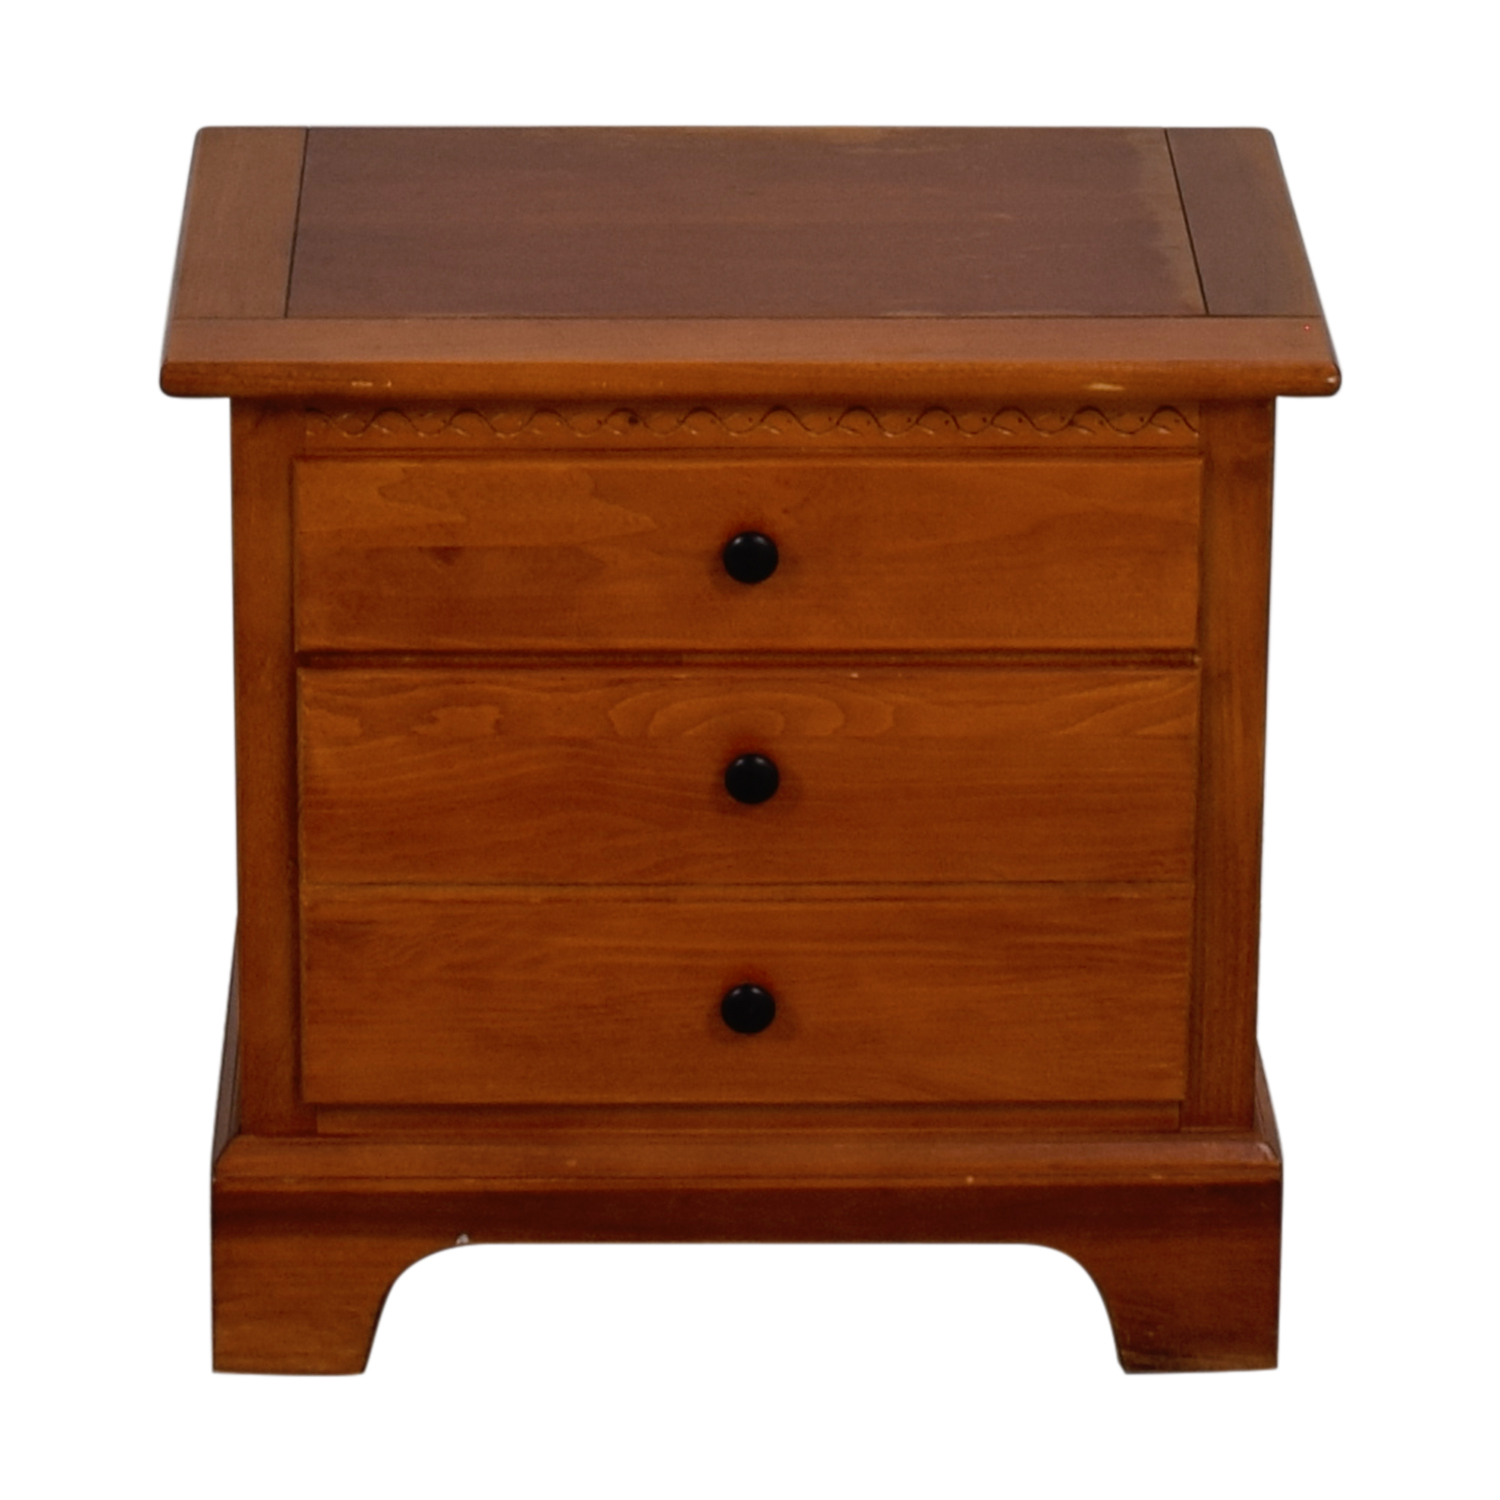 Vaughan Furniture Vaughan Furniture Nightstand used